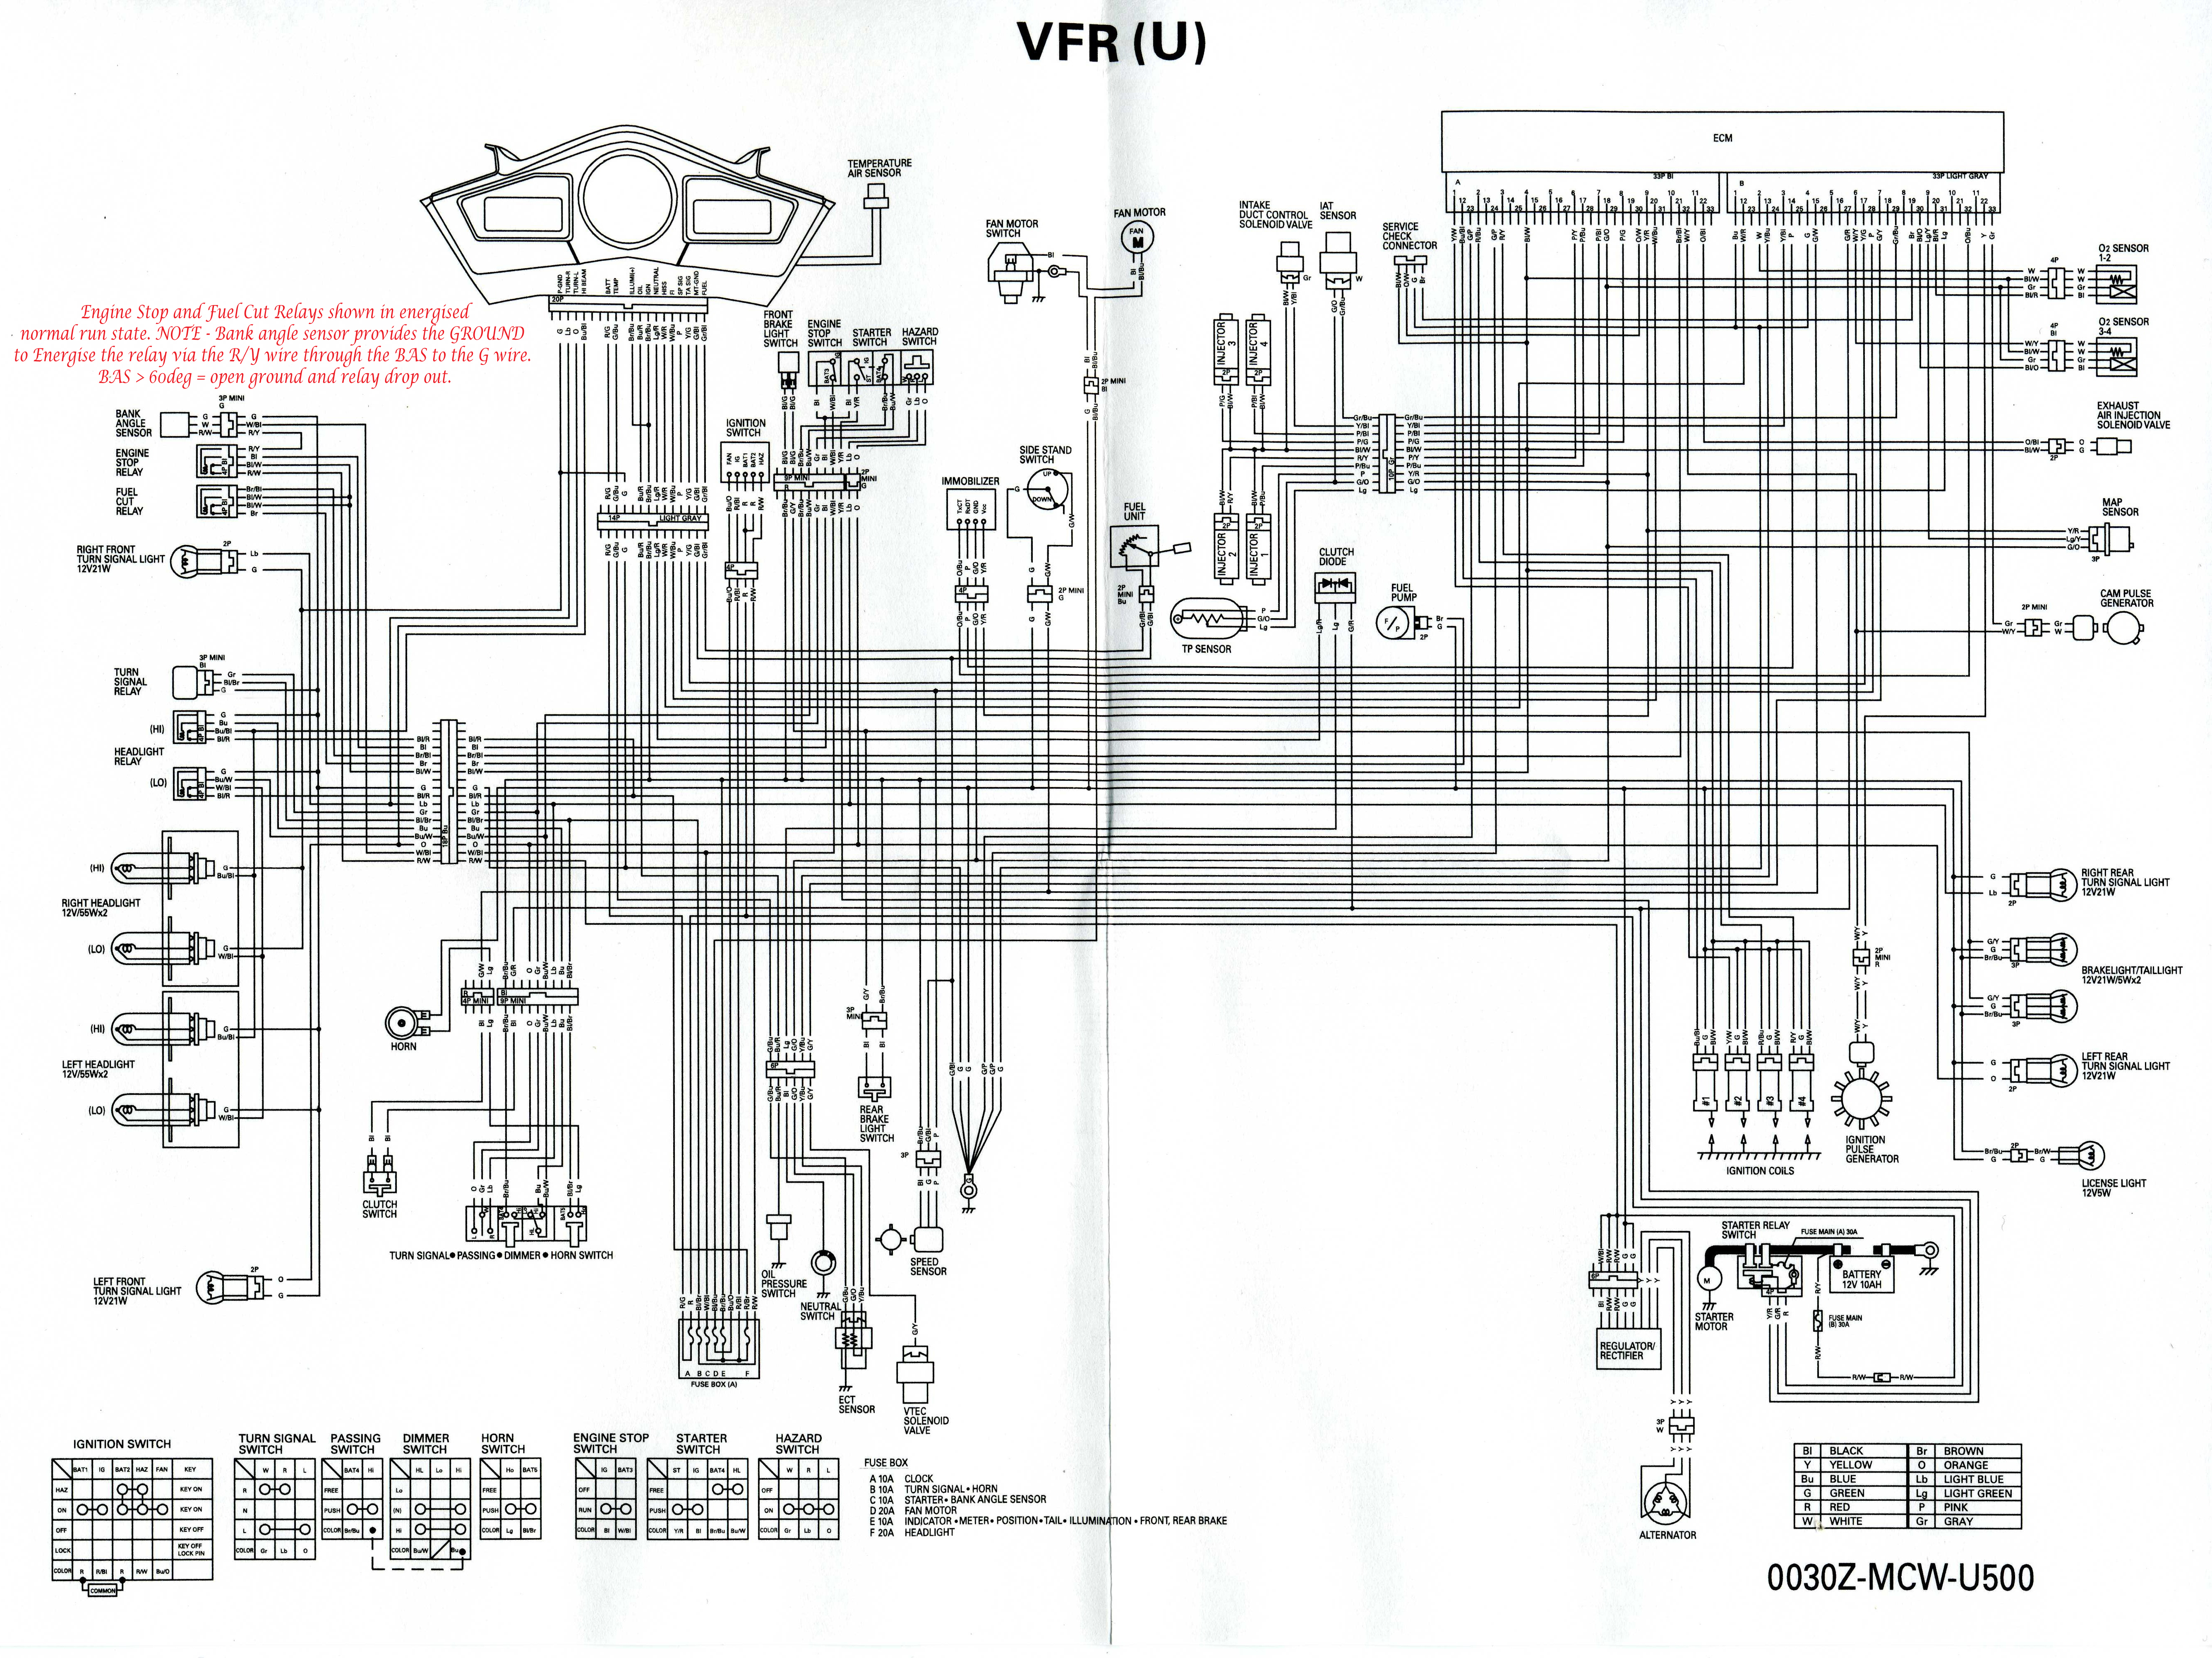 Honda Vfr Wiring Diagram Library Imgs In Addition Emergency Exit Light Circuit001